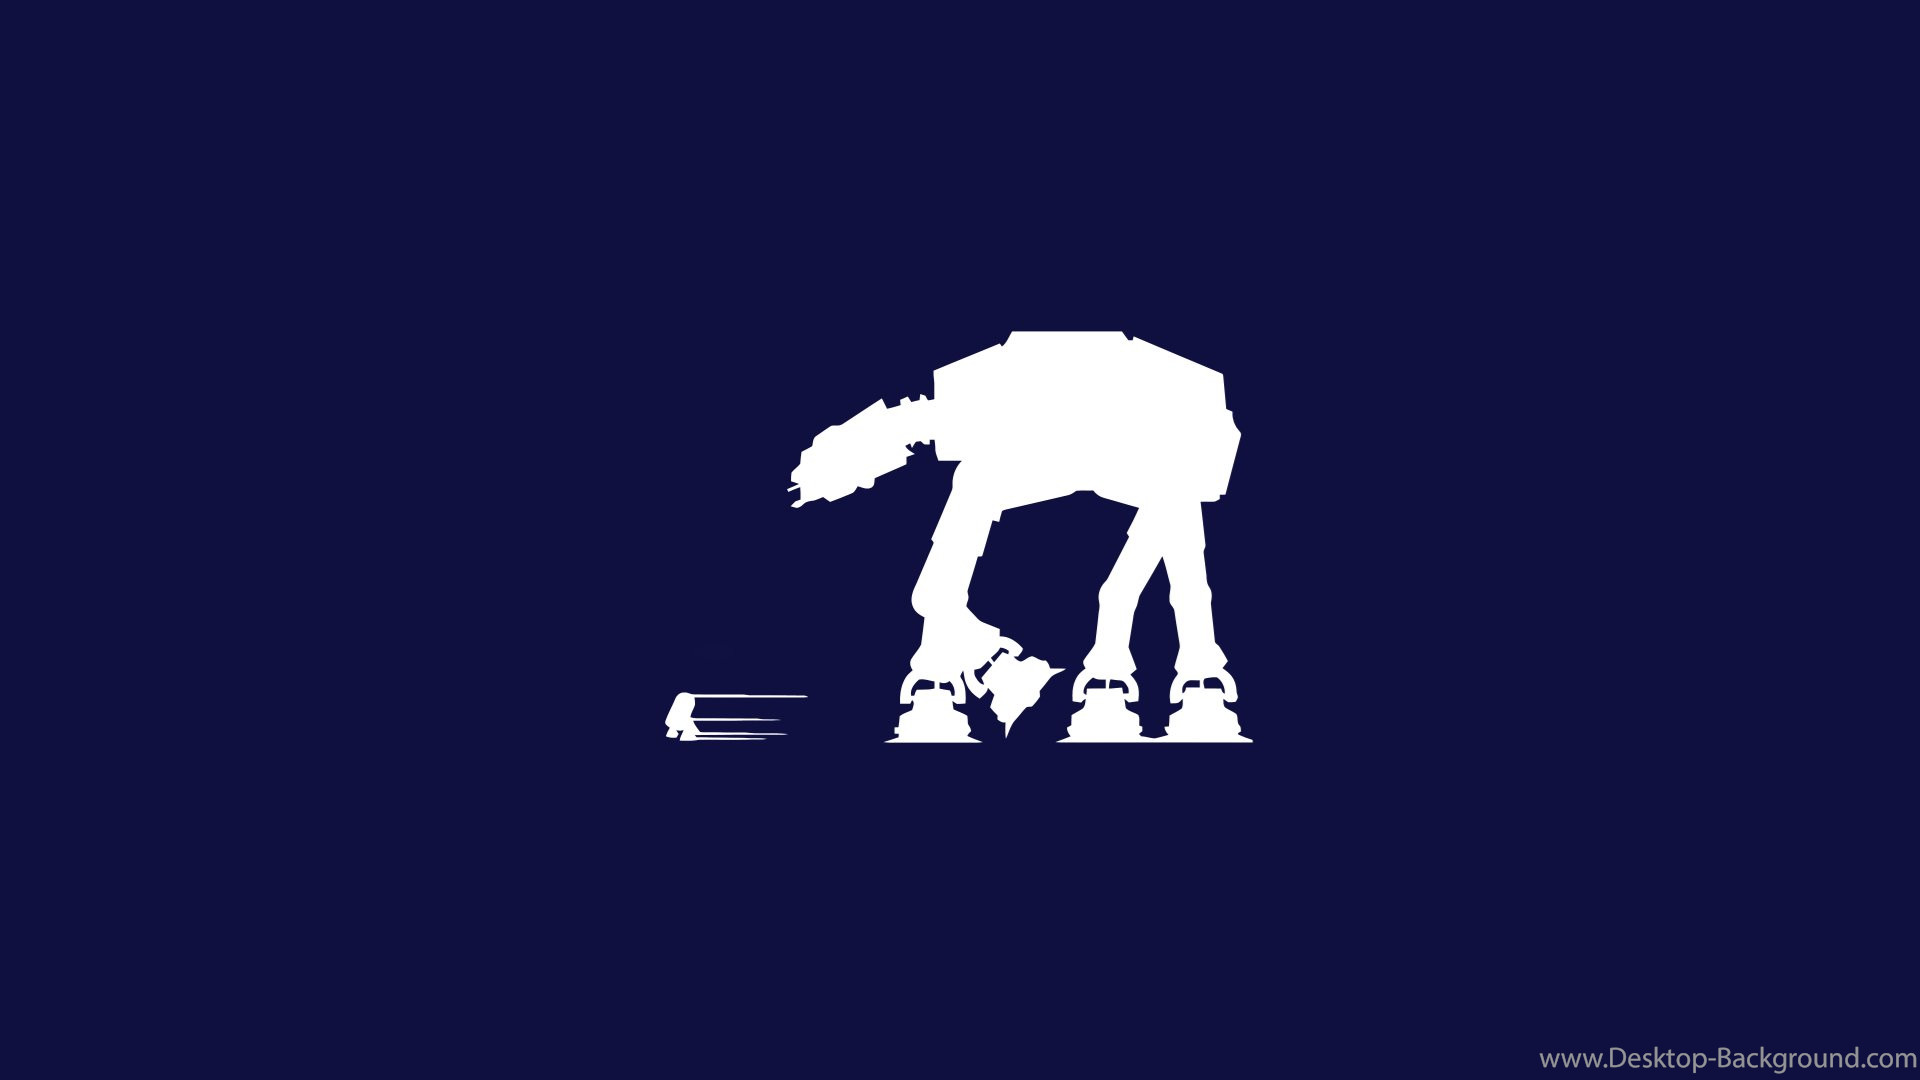 Funny Star Wars Backgrounds Posted By Michelle Cunningham